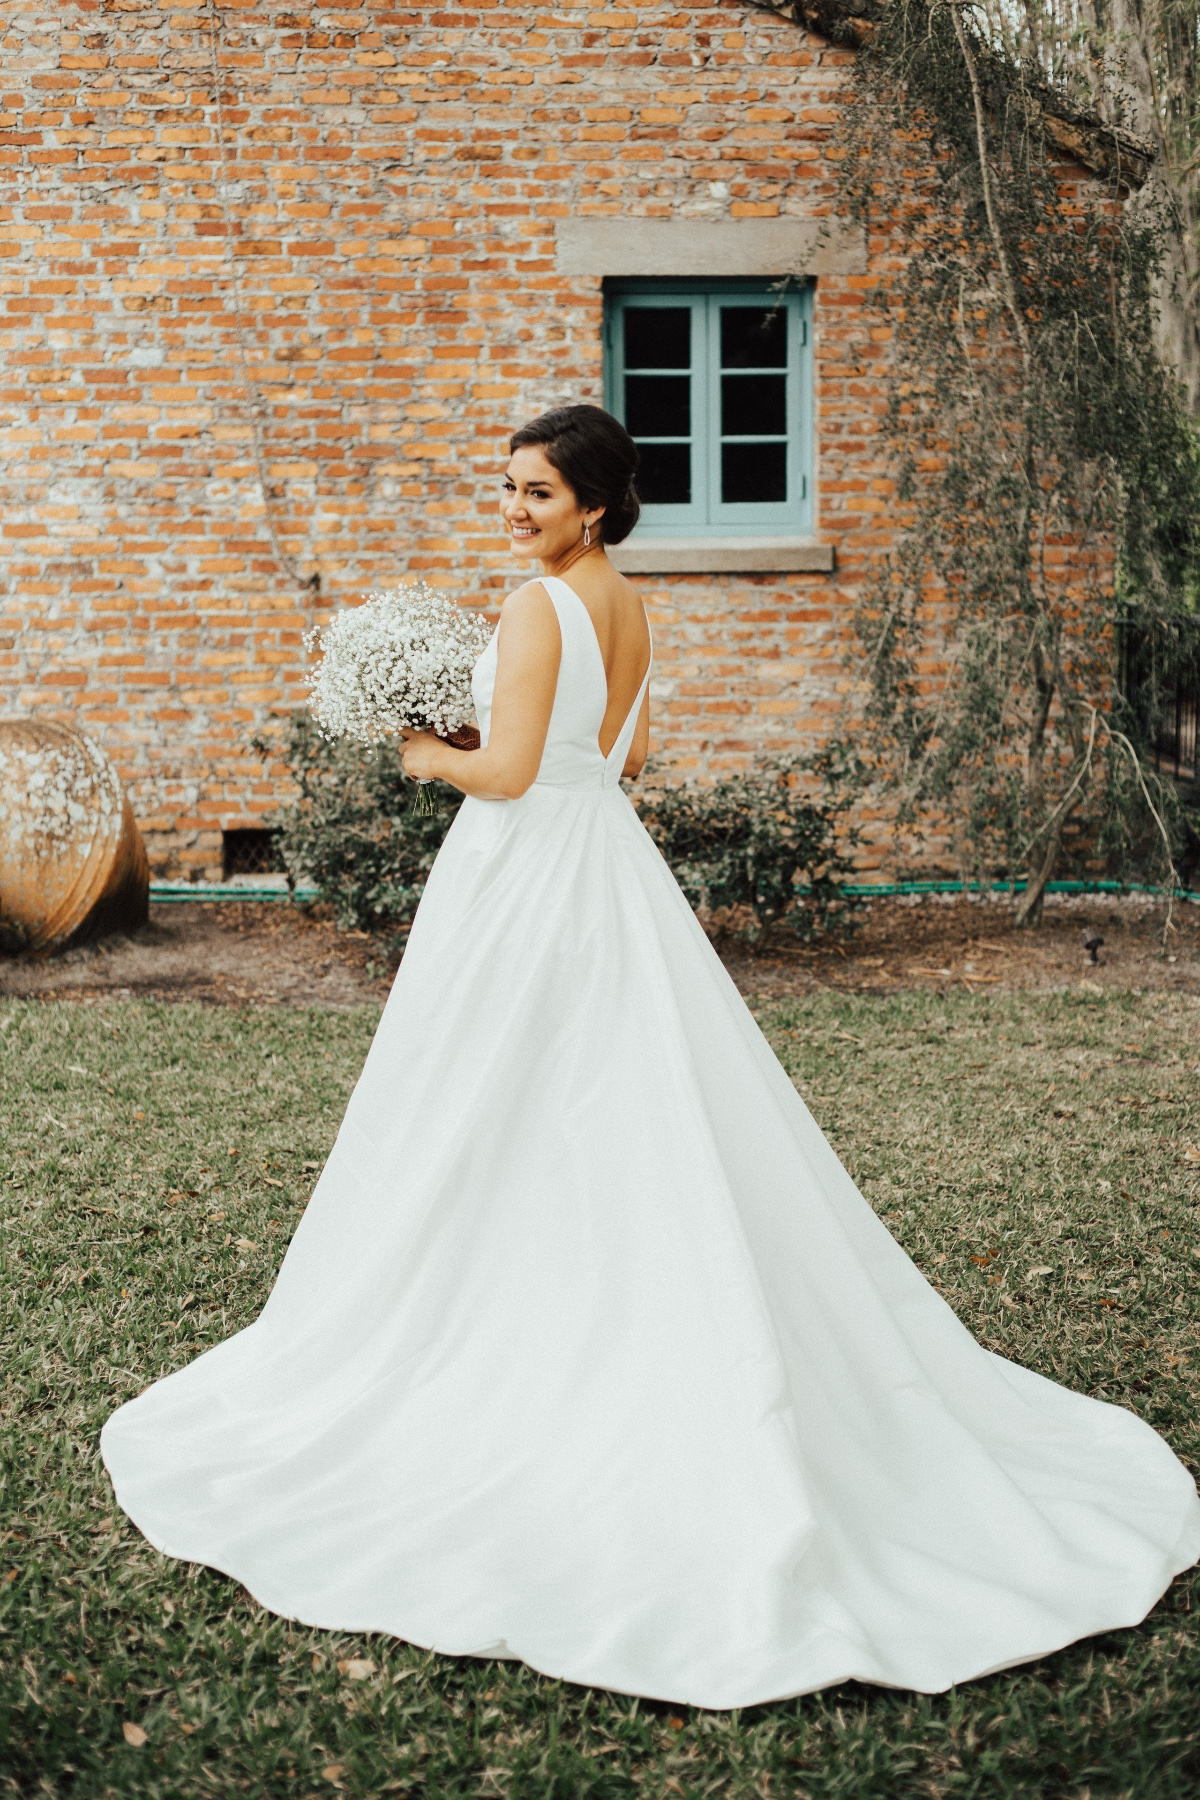 Classic Bridal Gown with thicker straps holding a baby's breath bouquet